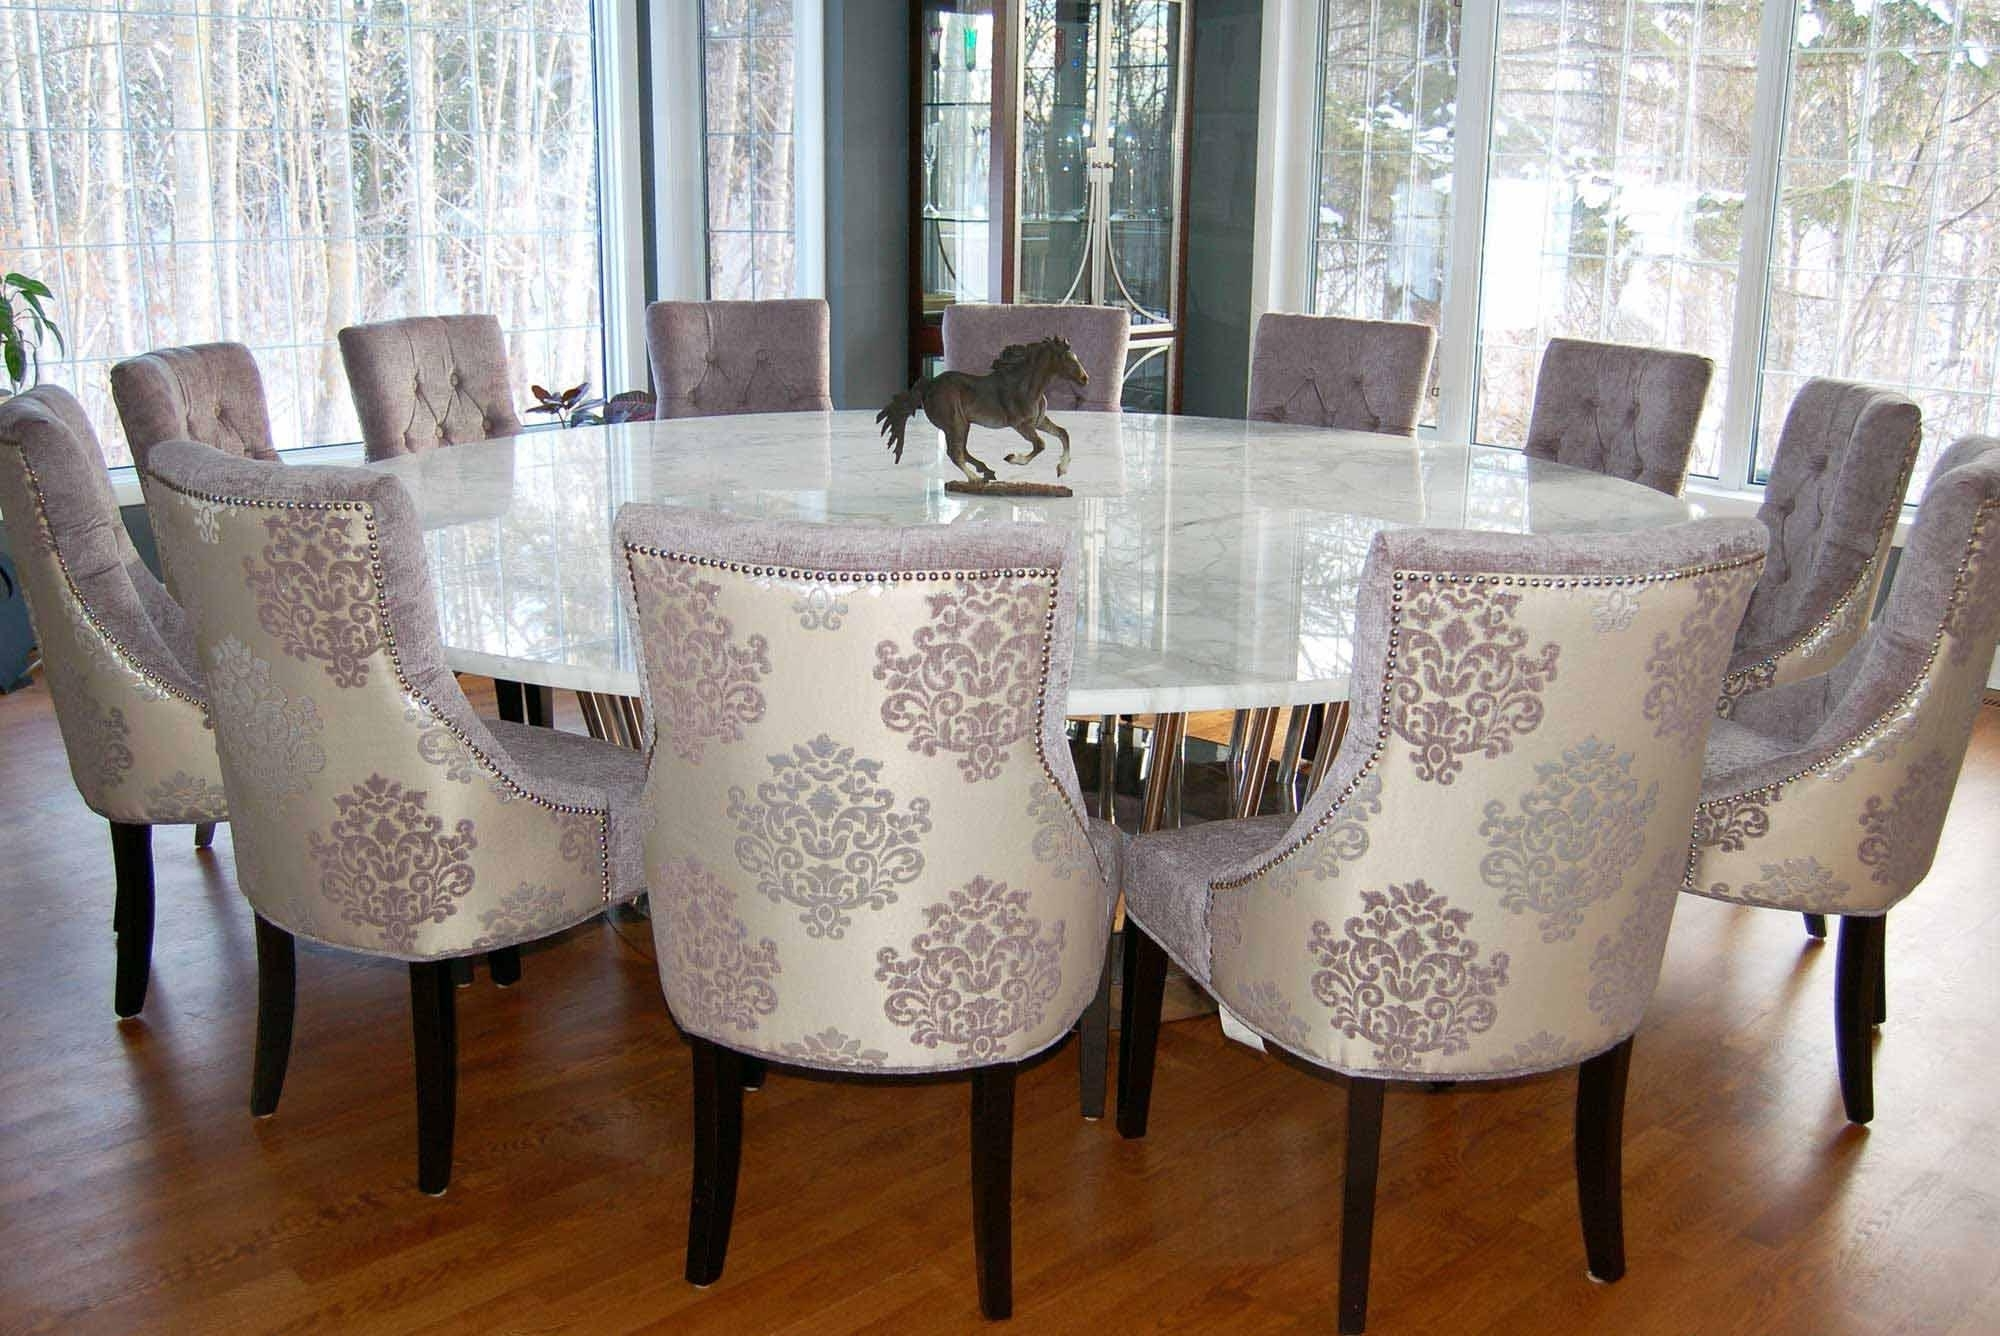 Latest Dining Tables Marvellous Large Round Dining Table Seats 10 Round Intended For Large White Round Dining Tables (View 18 of 25)